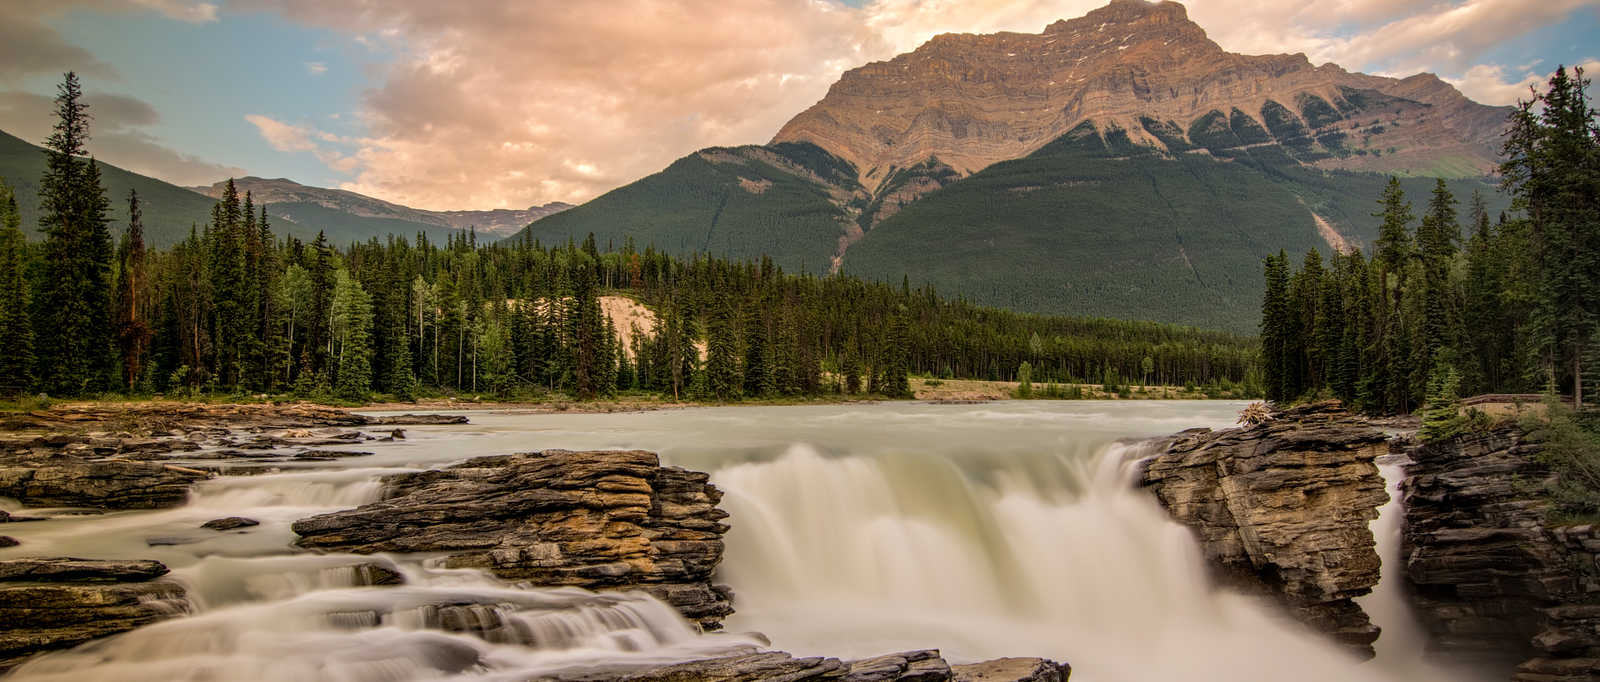 Long exposure of the beautiful Athabasca Falls with towering sunlit of Mount Kerkeslin in the background, Canada.